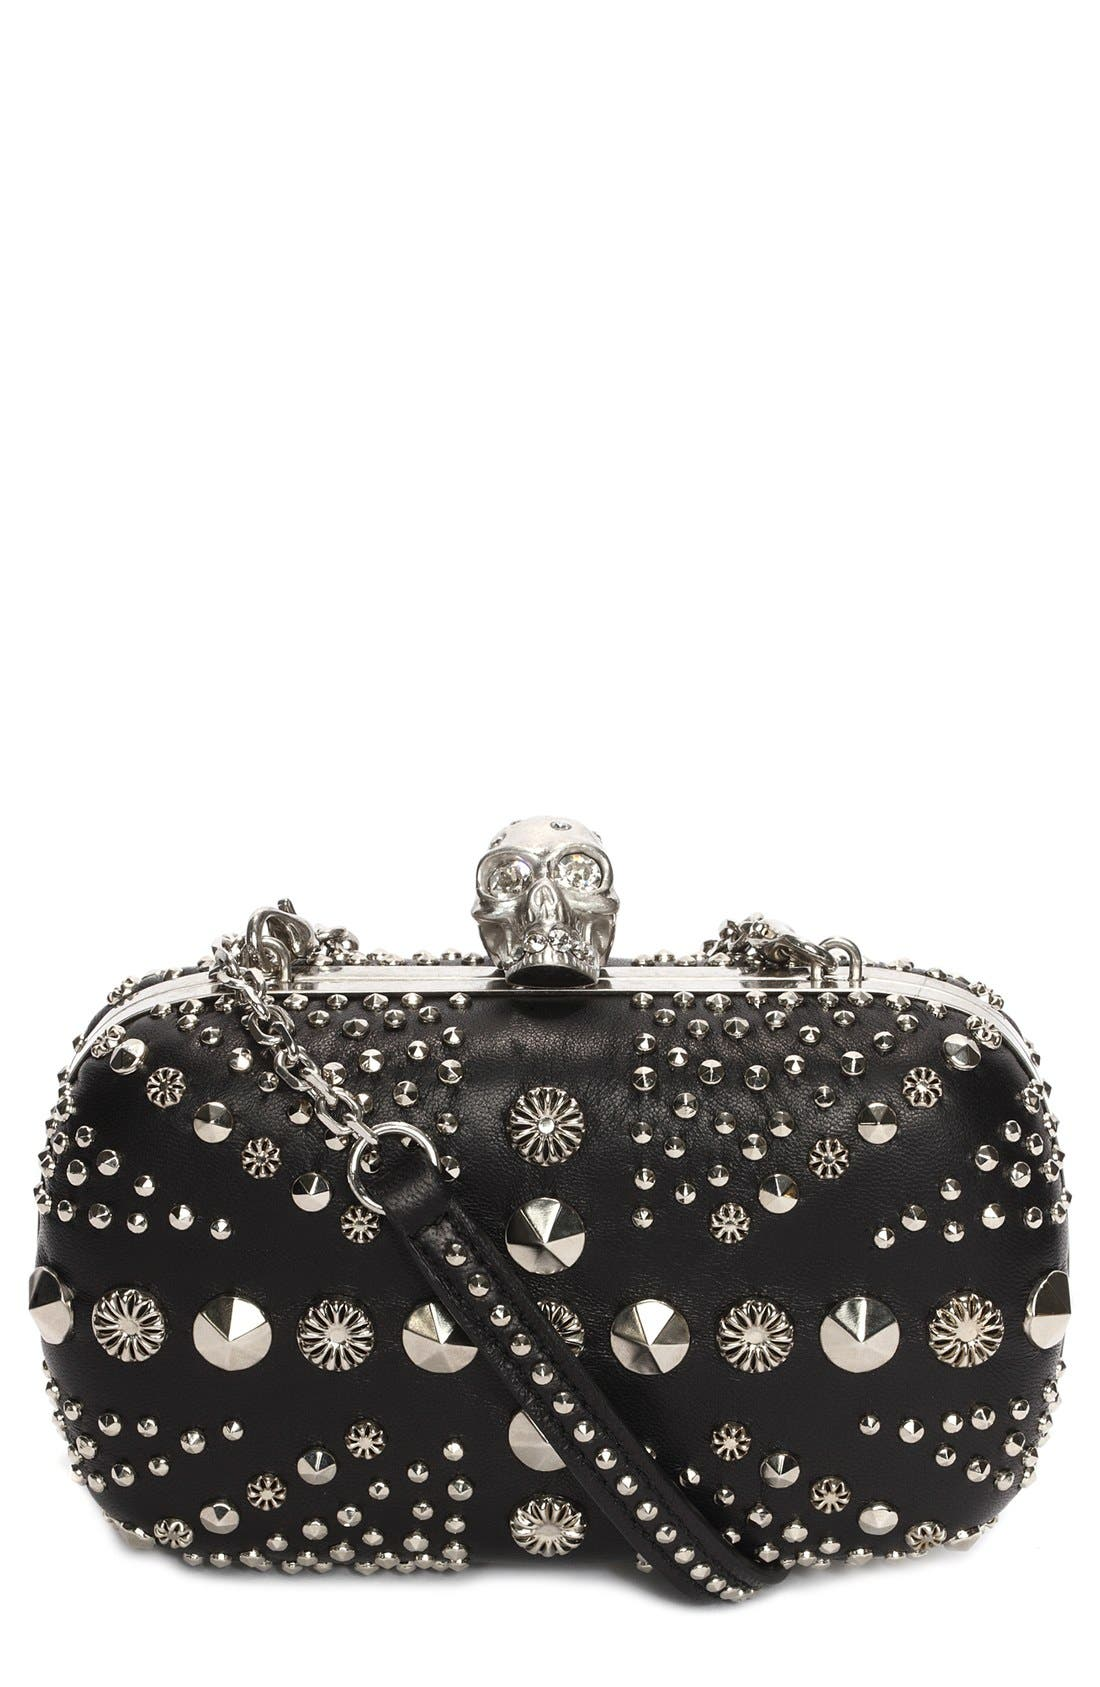 Alternate Image 1 Selected - Alexander McQueen Studded Box Clutch